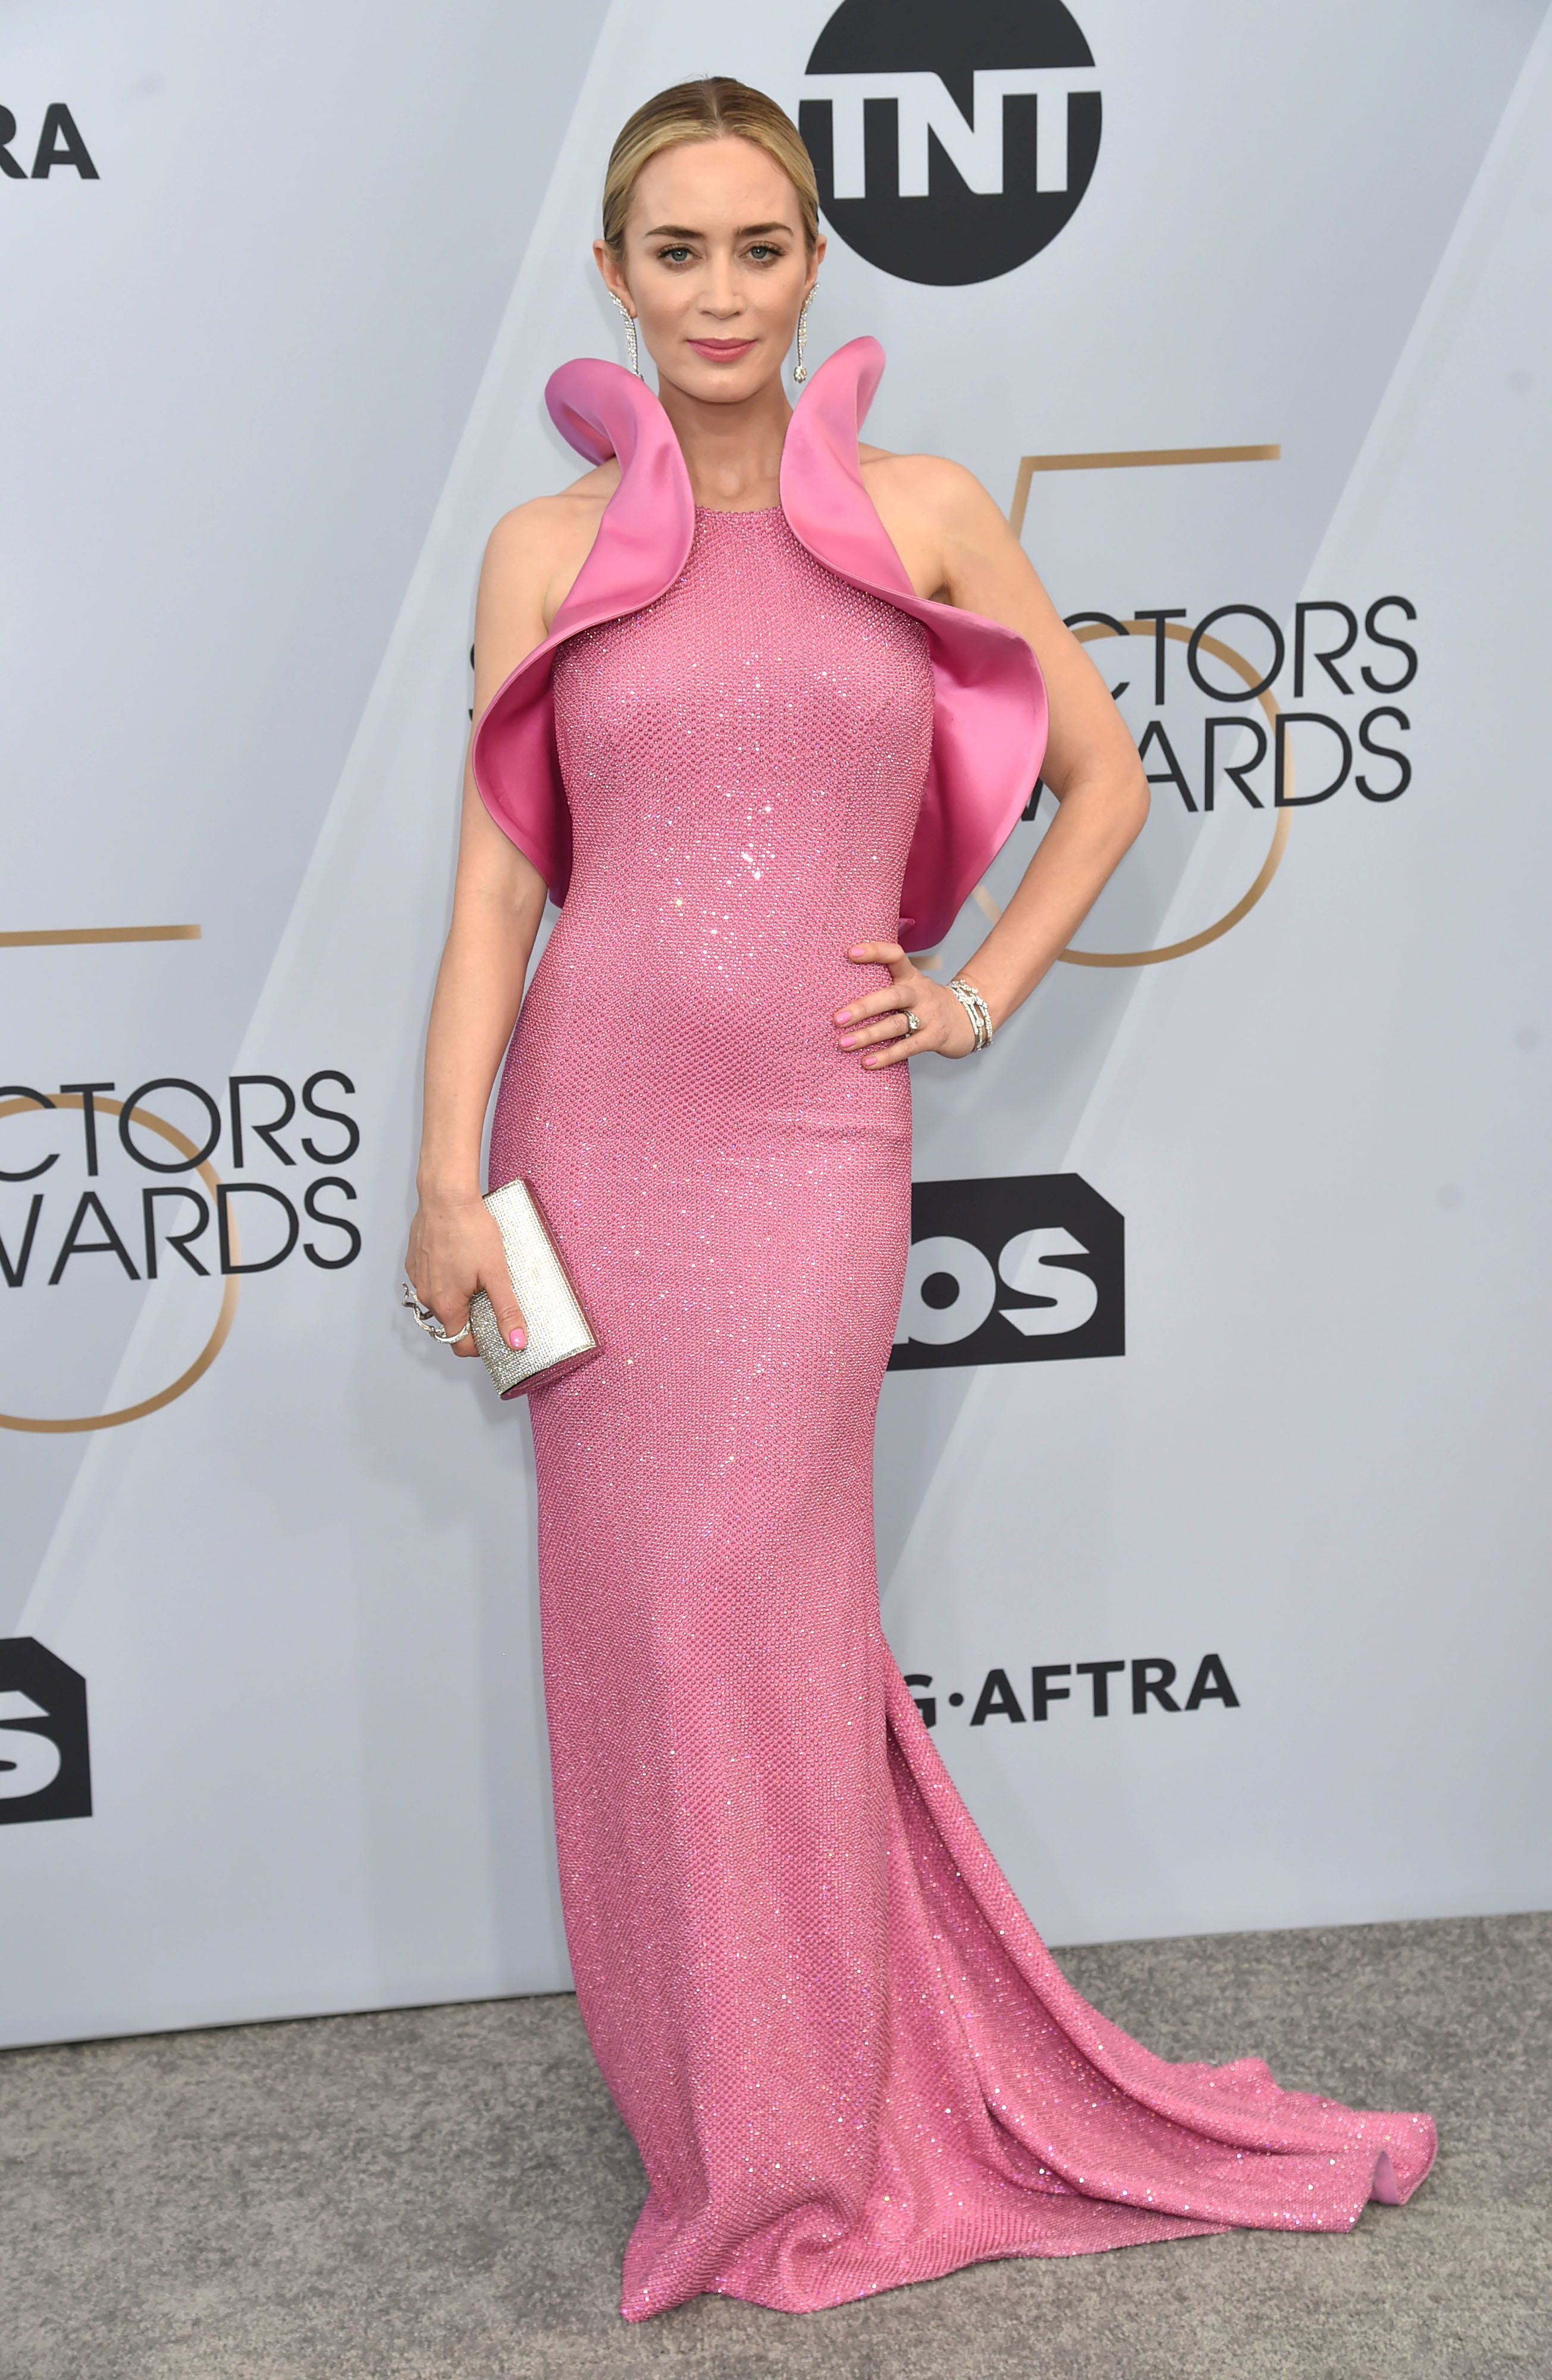 Emily Blunt's Pink 'Vagina Dress' Has People On Twitter In A